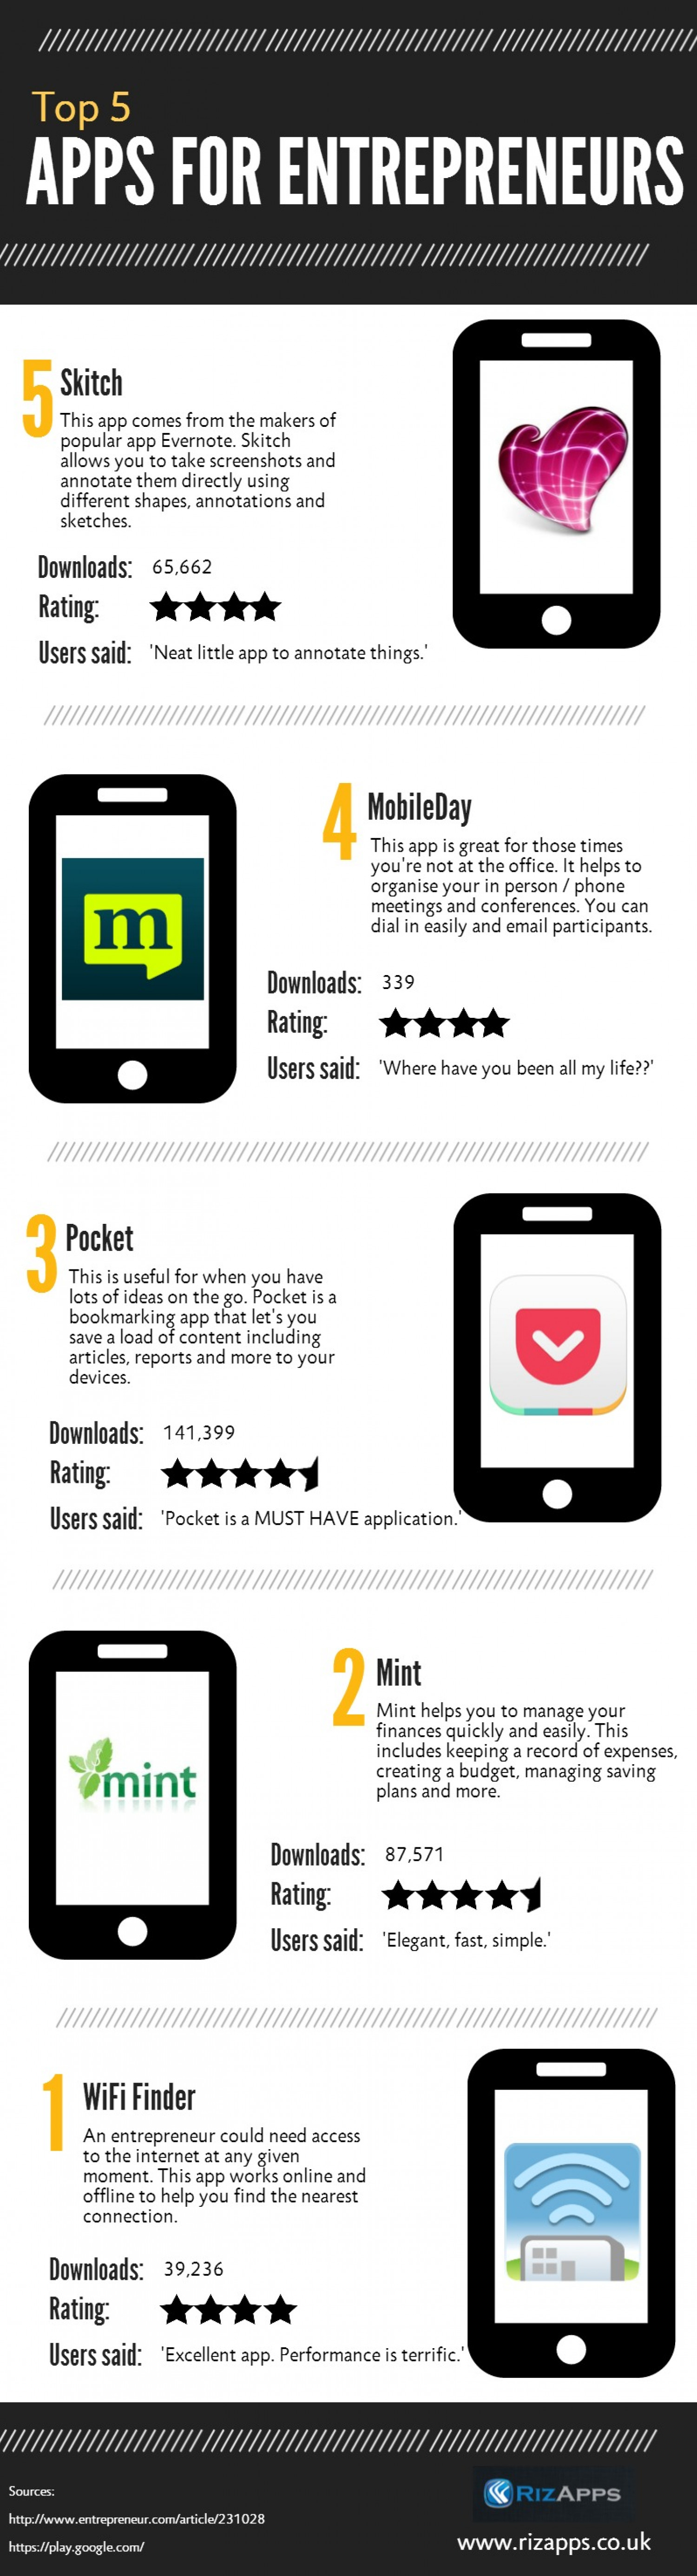 Top 5 Apps for Entrepreneurs Infographic